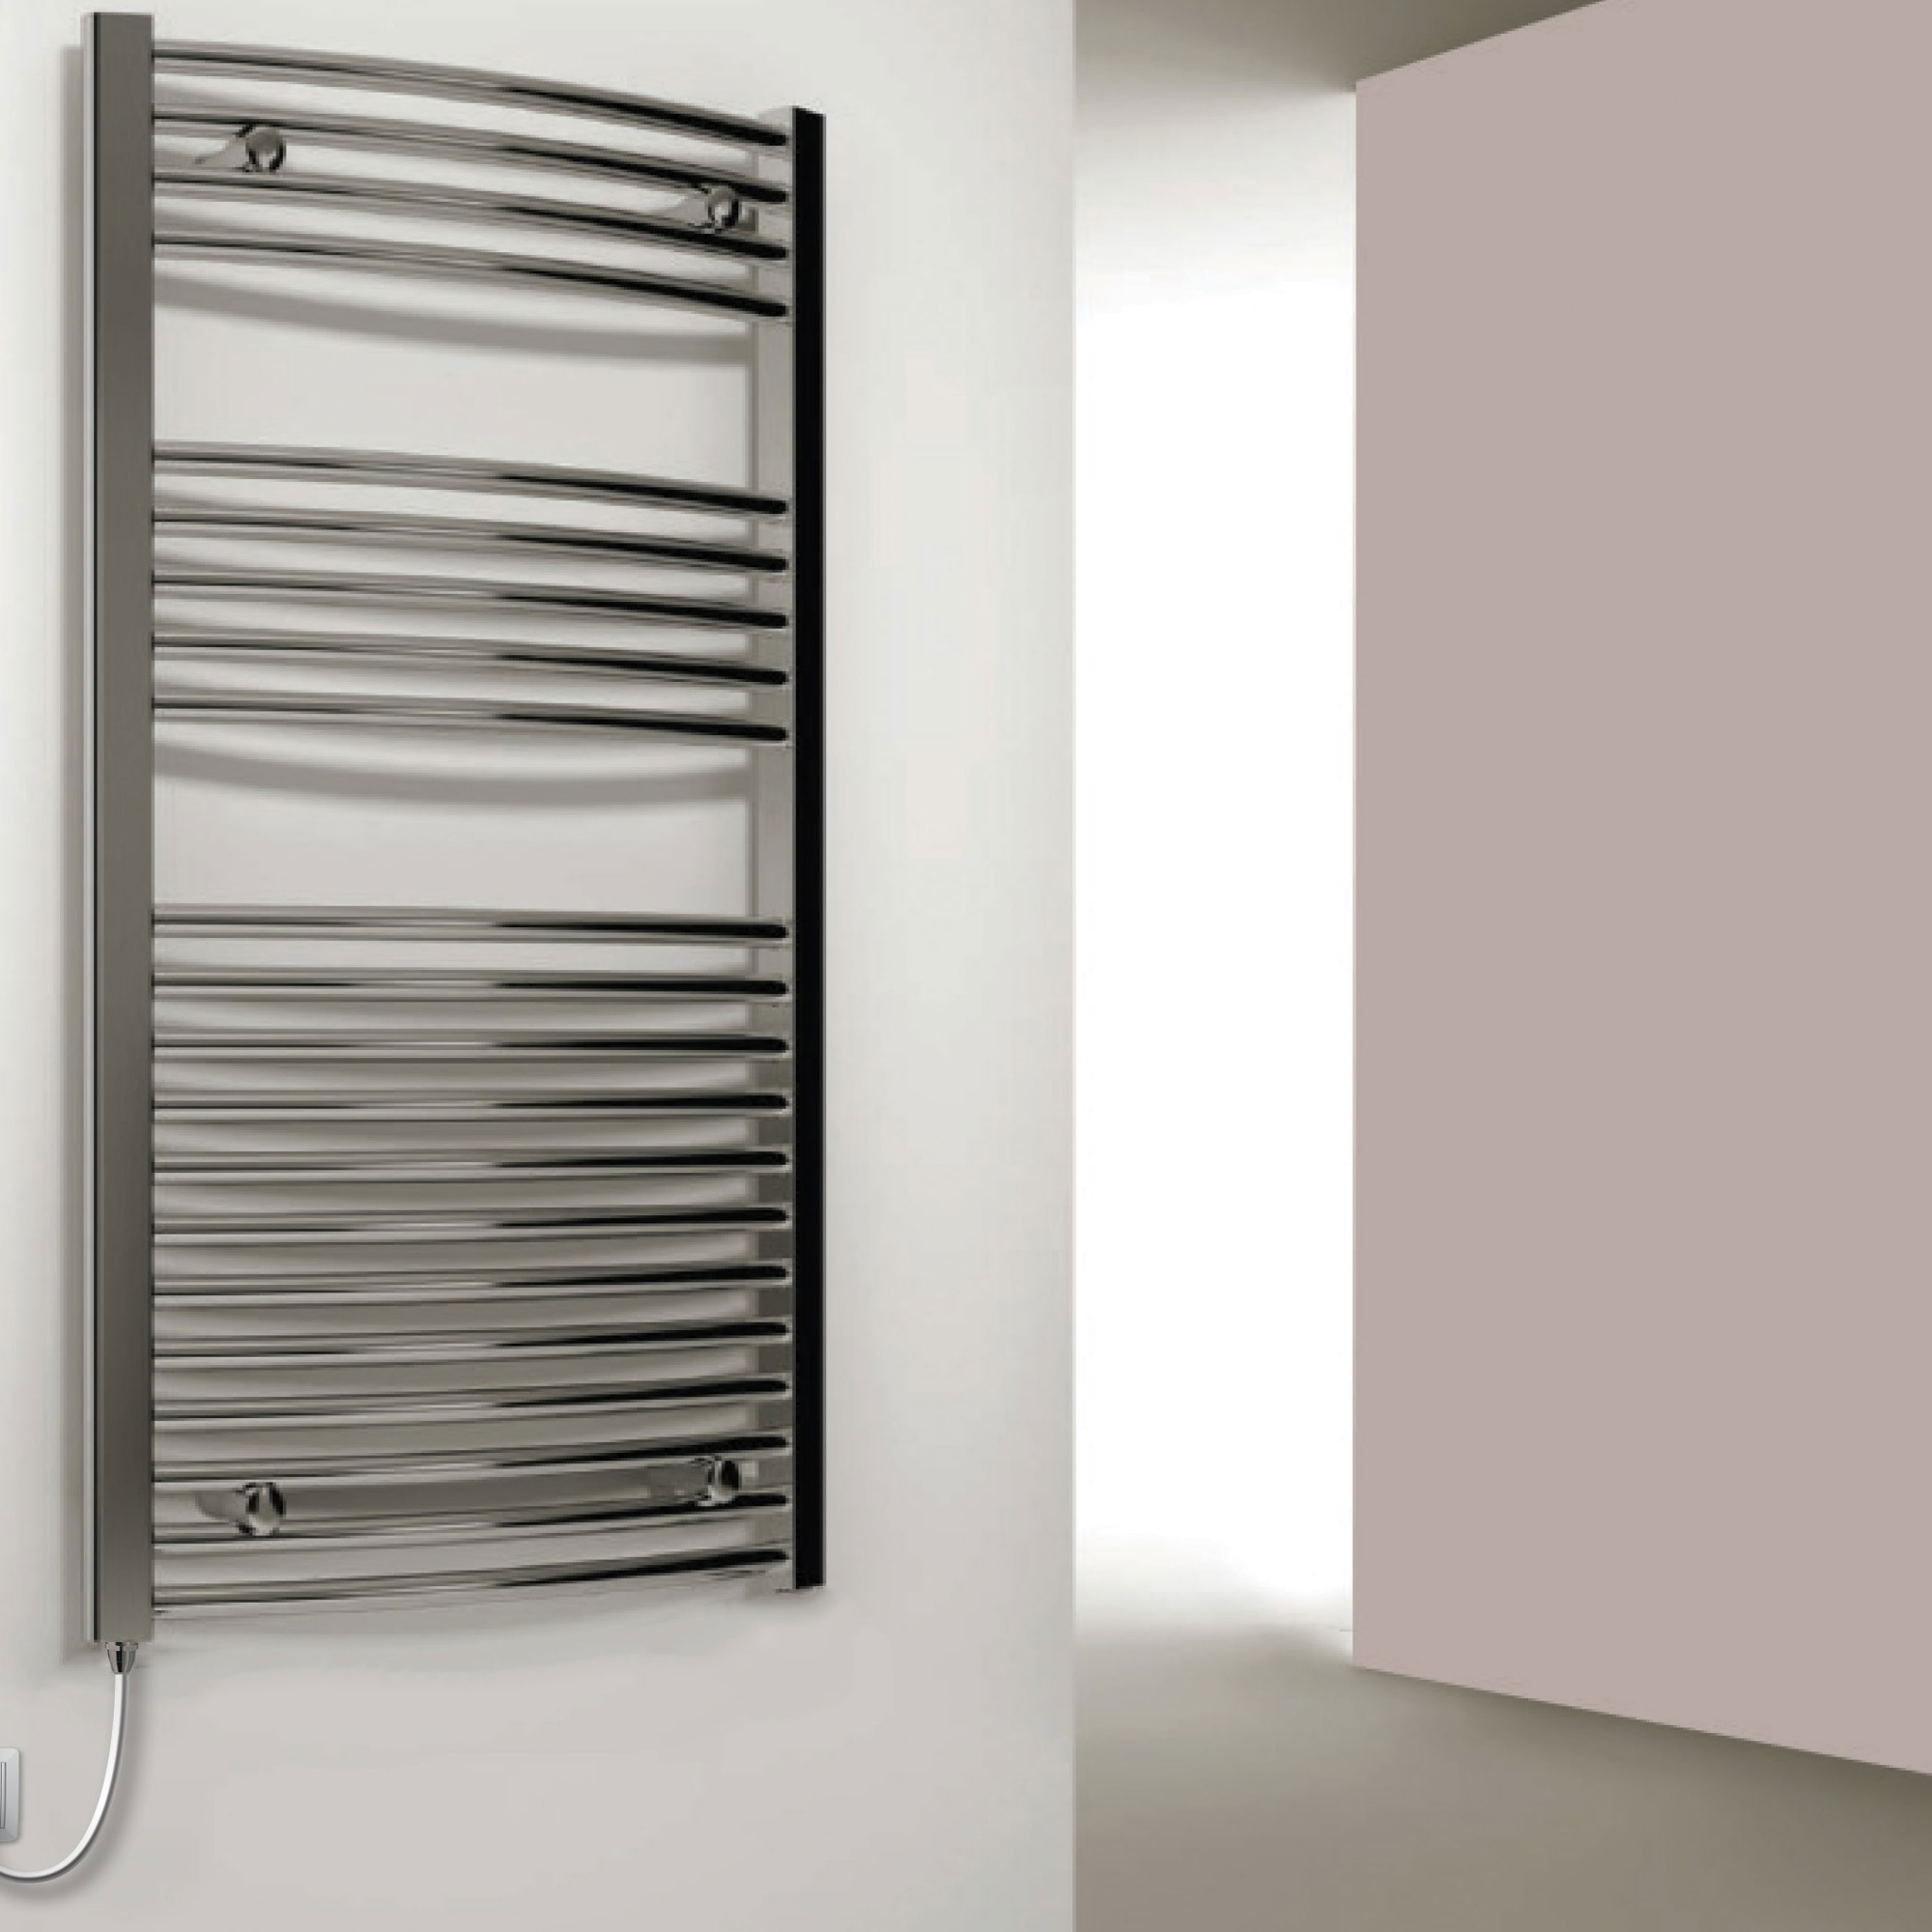 Reina Capo Curved Electric Heated Towel Rail 1000mm H x 400mm W Chrome